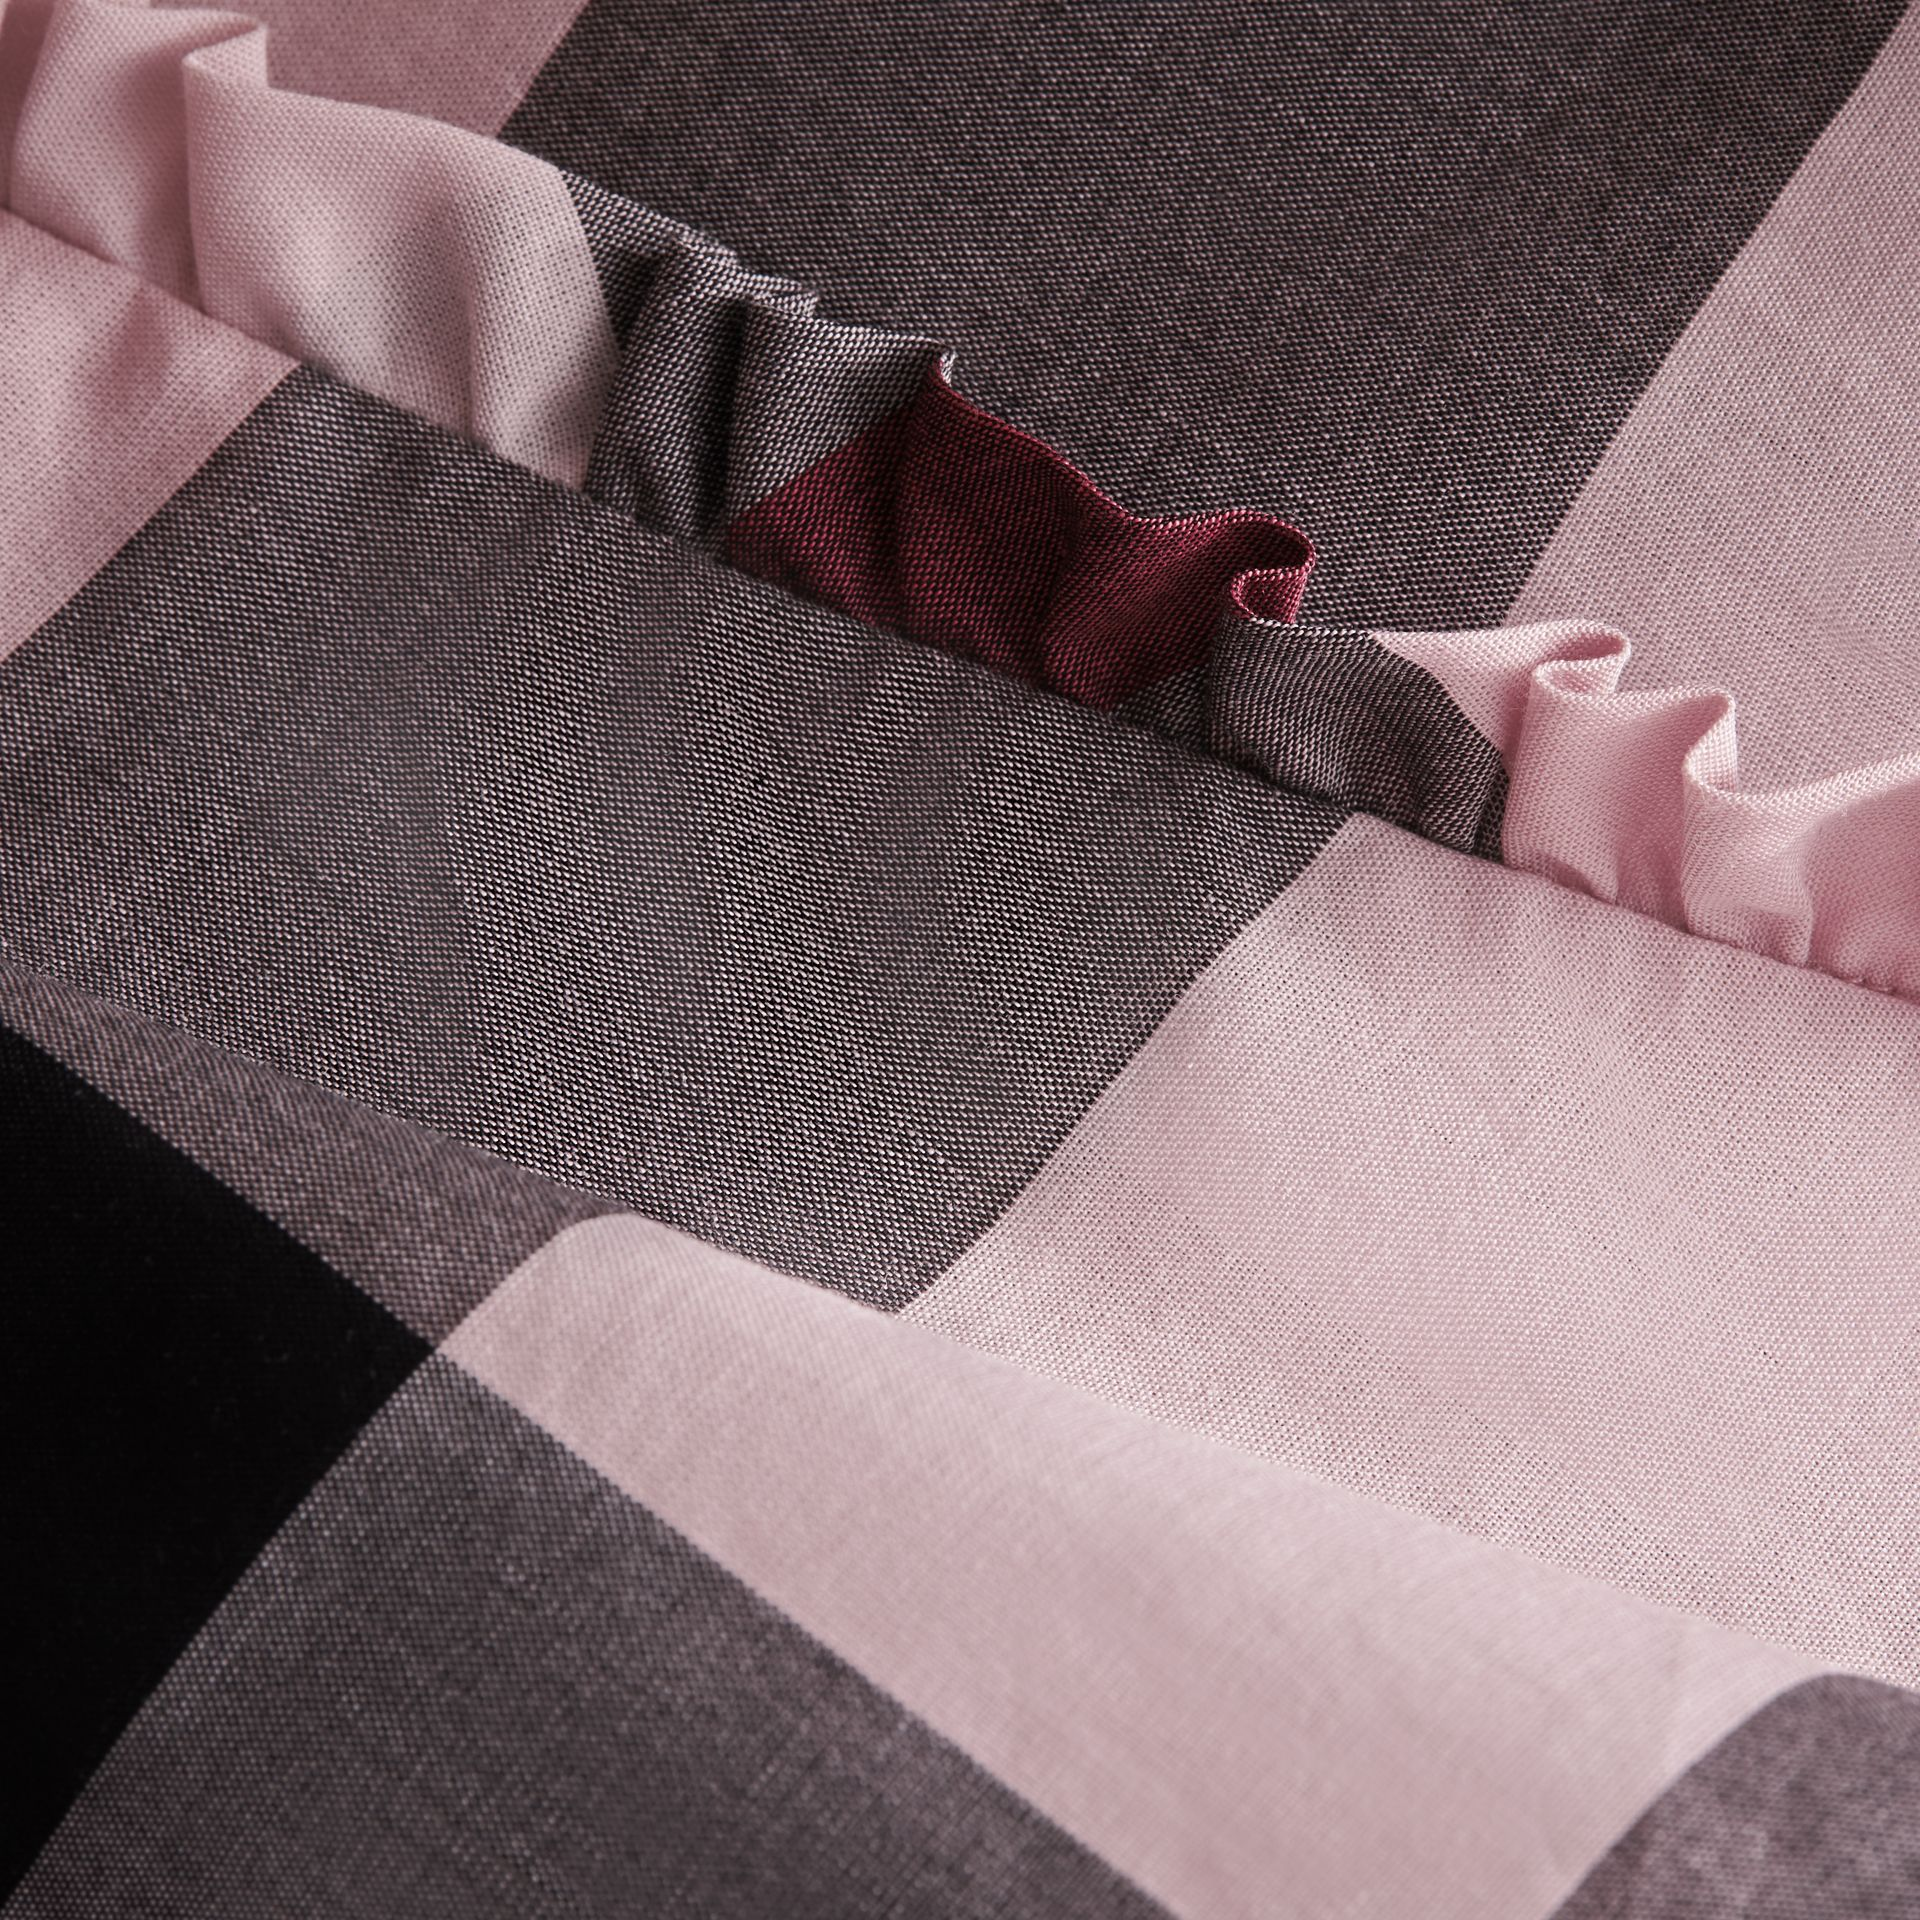 Ruffle Detail Check Cotton Top in Vintage Pink | Burberry - gallery image 2